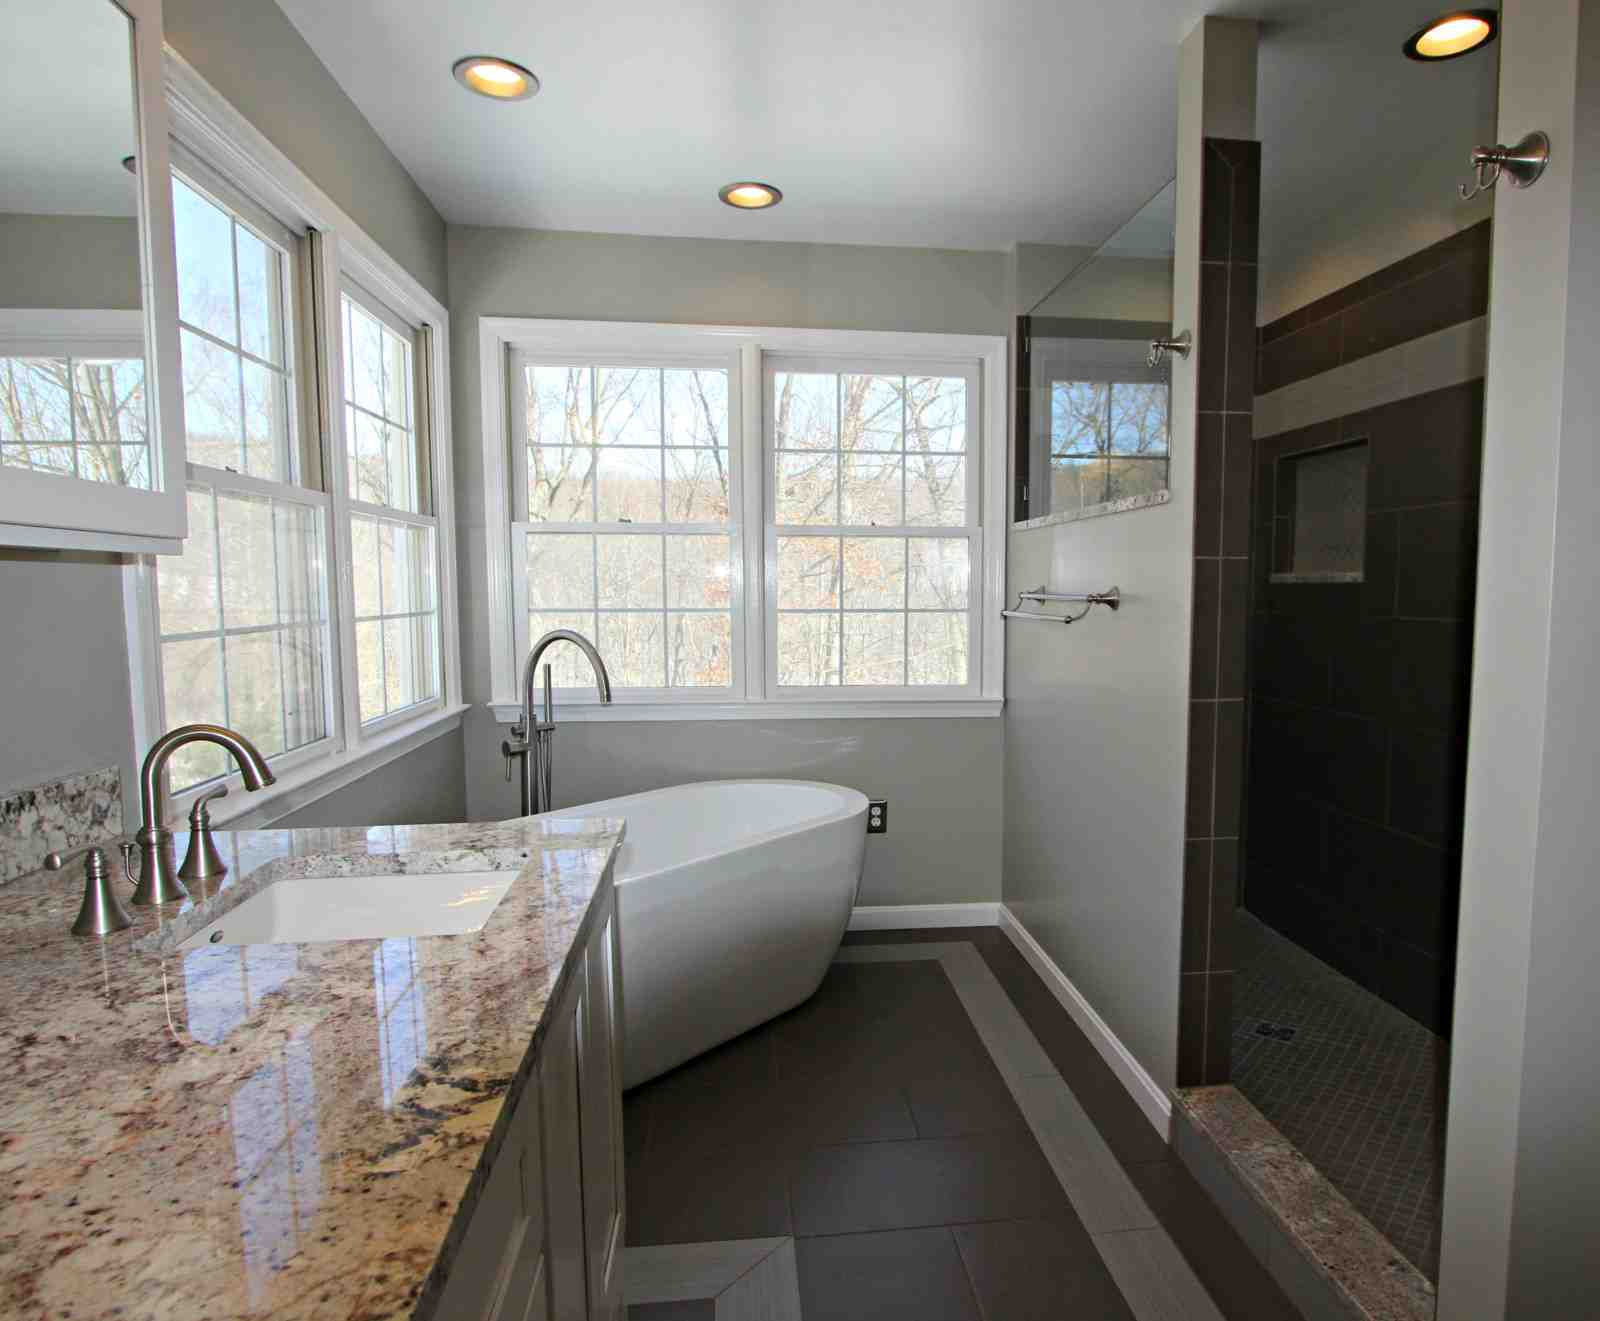 Bathroom Remodel With Freestanding Tub